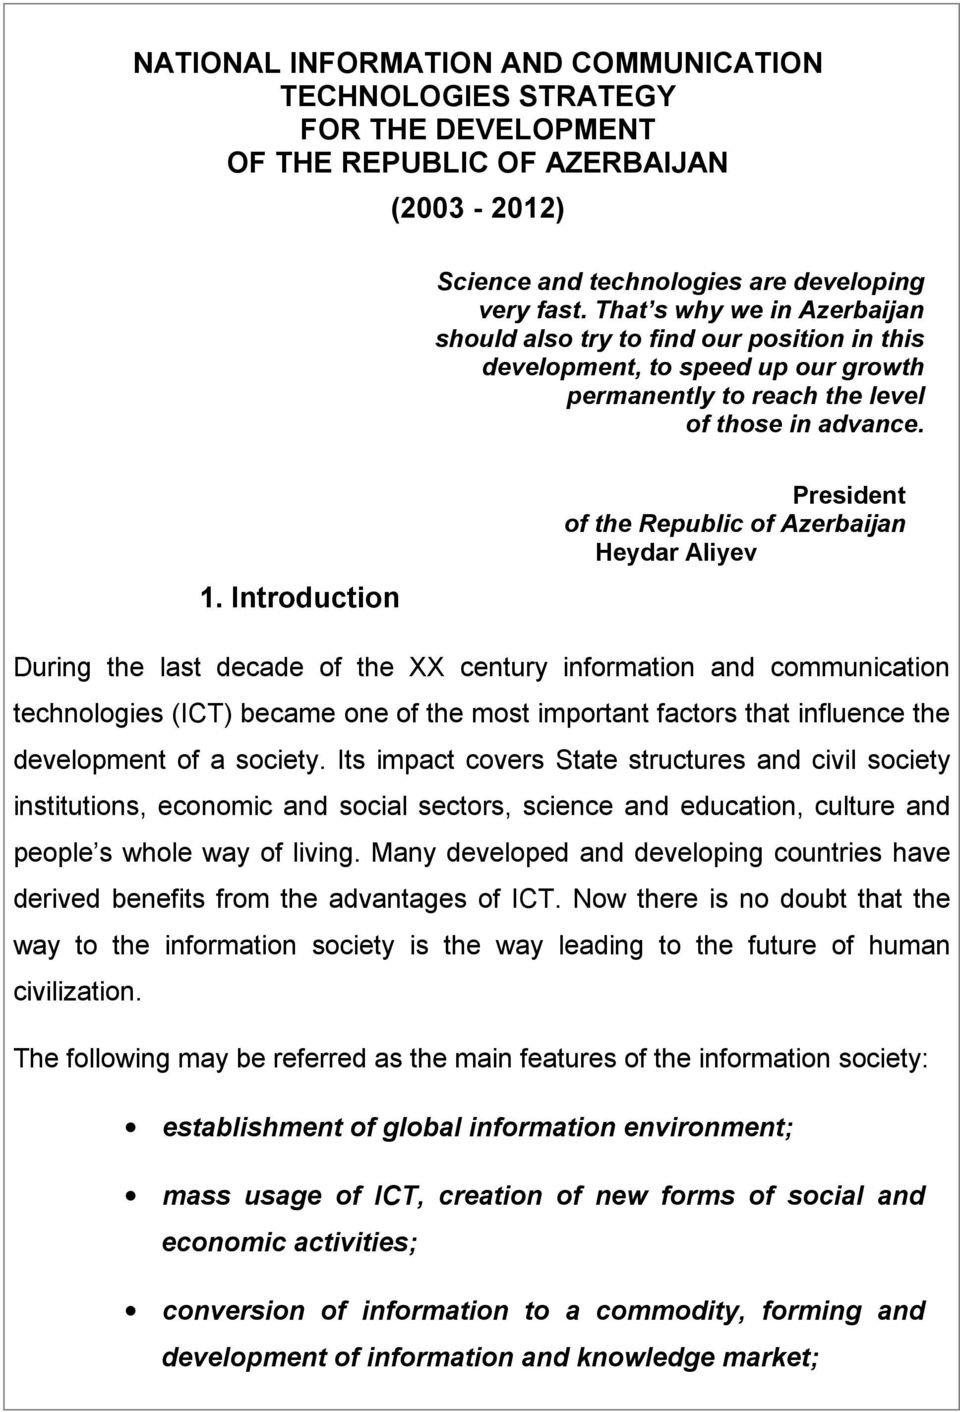 Introduction President of the Republic of Azerbaijan Heydar Aliyev During the last decade of the XX century information and communication technologies (ICT) became one of the most important factors